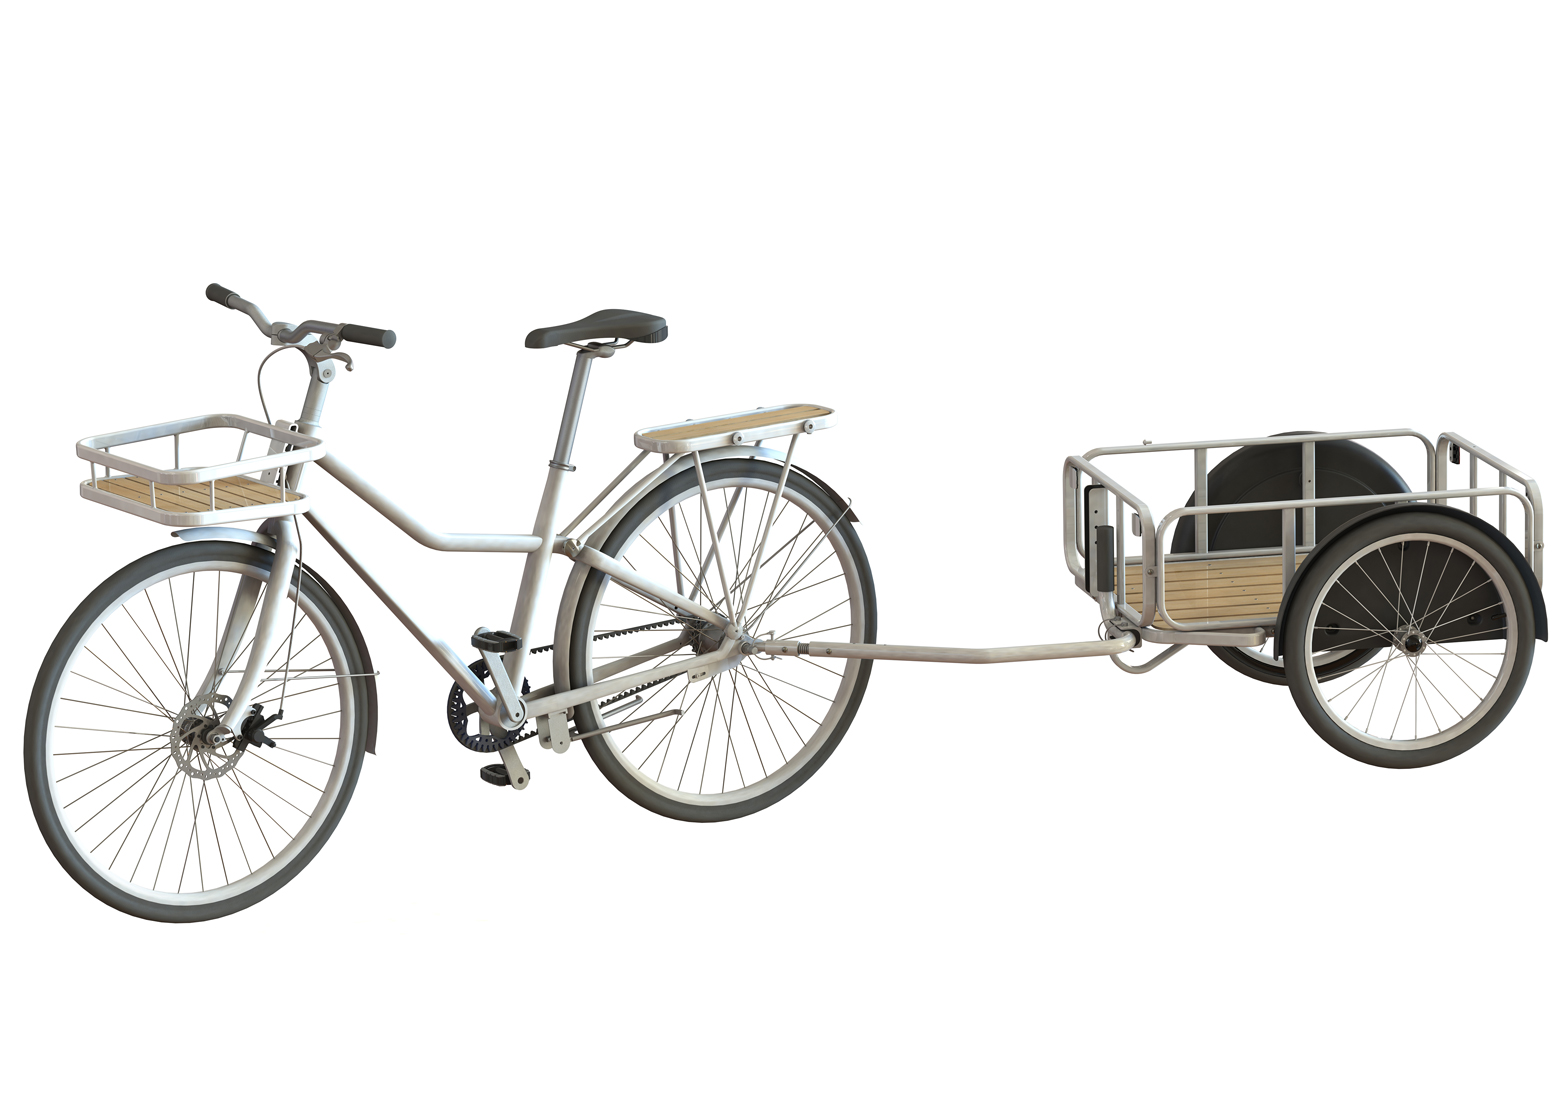 Sladda bicycle by Ikea